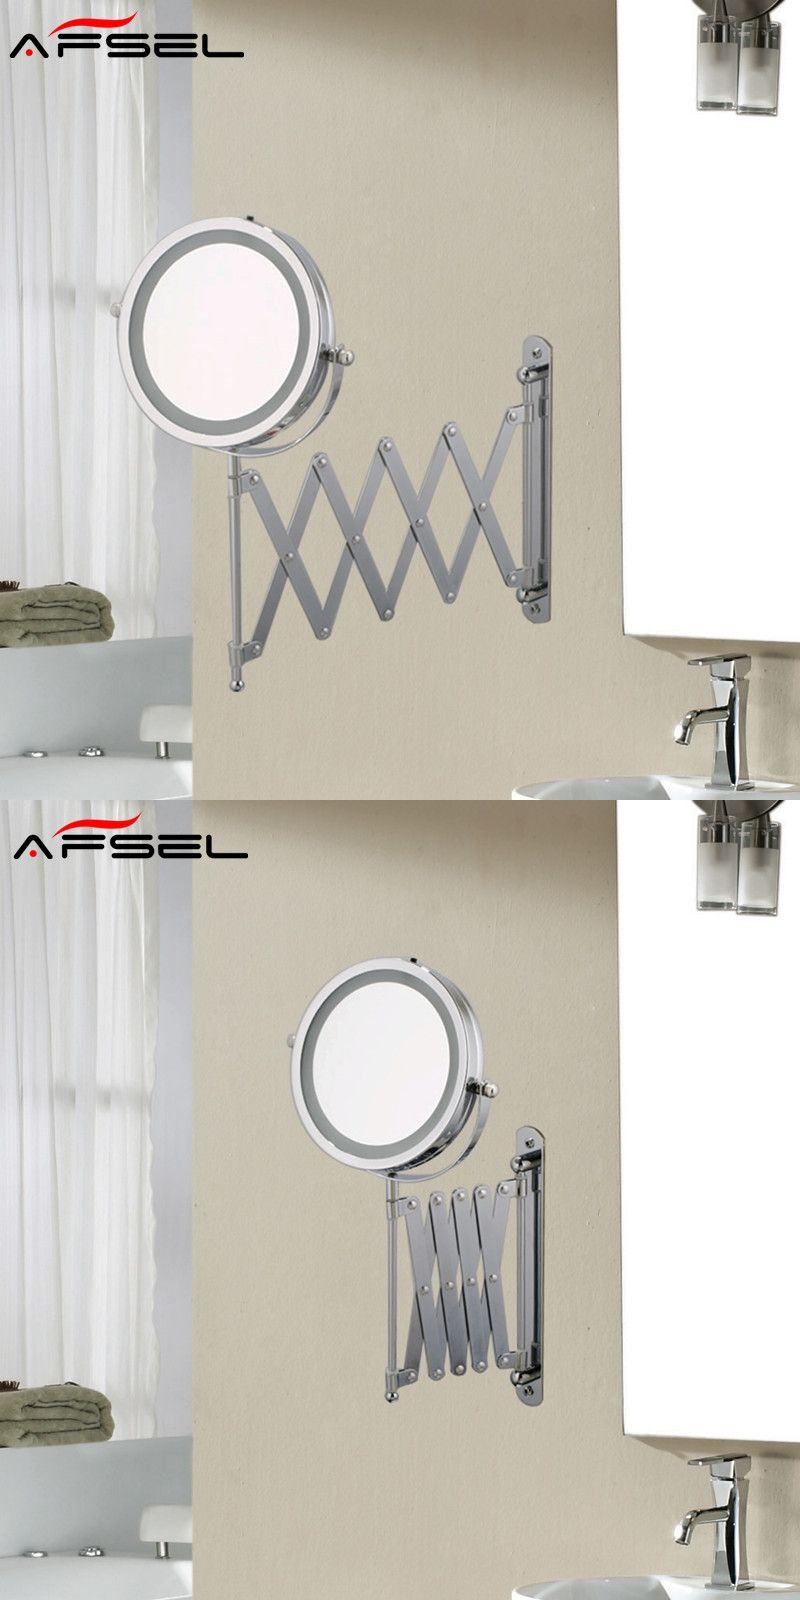 AFSEL 7 Inch Makeup Mirrors LED Wall Mounted Extending Folding ...